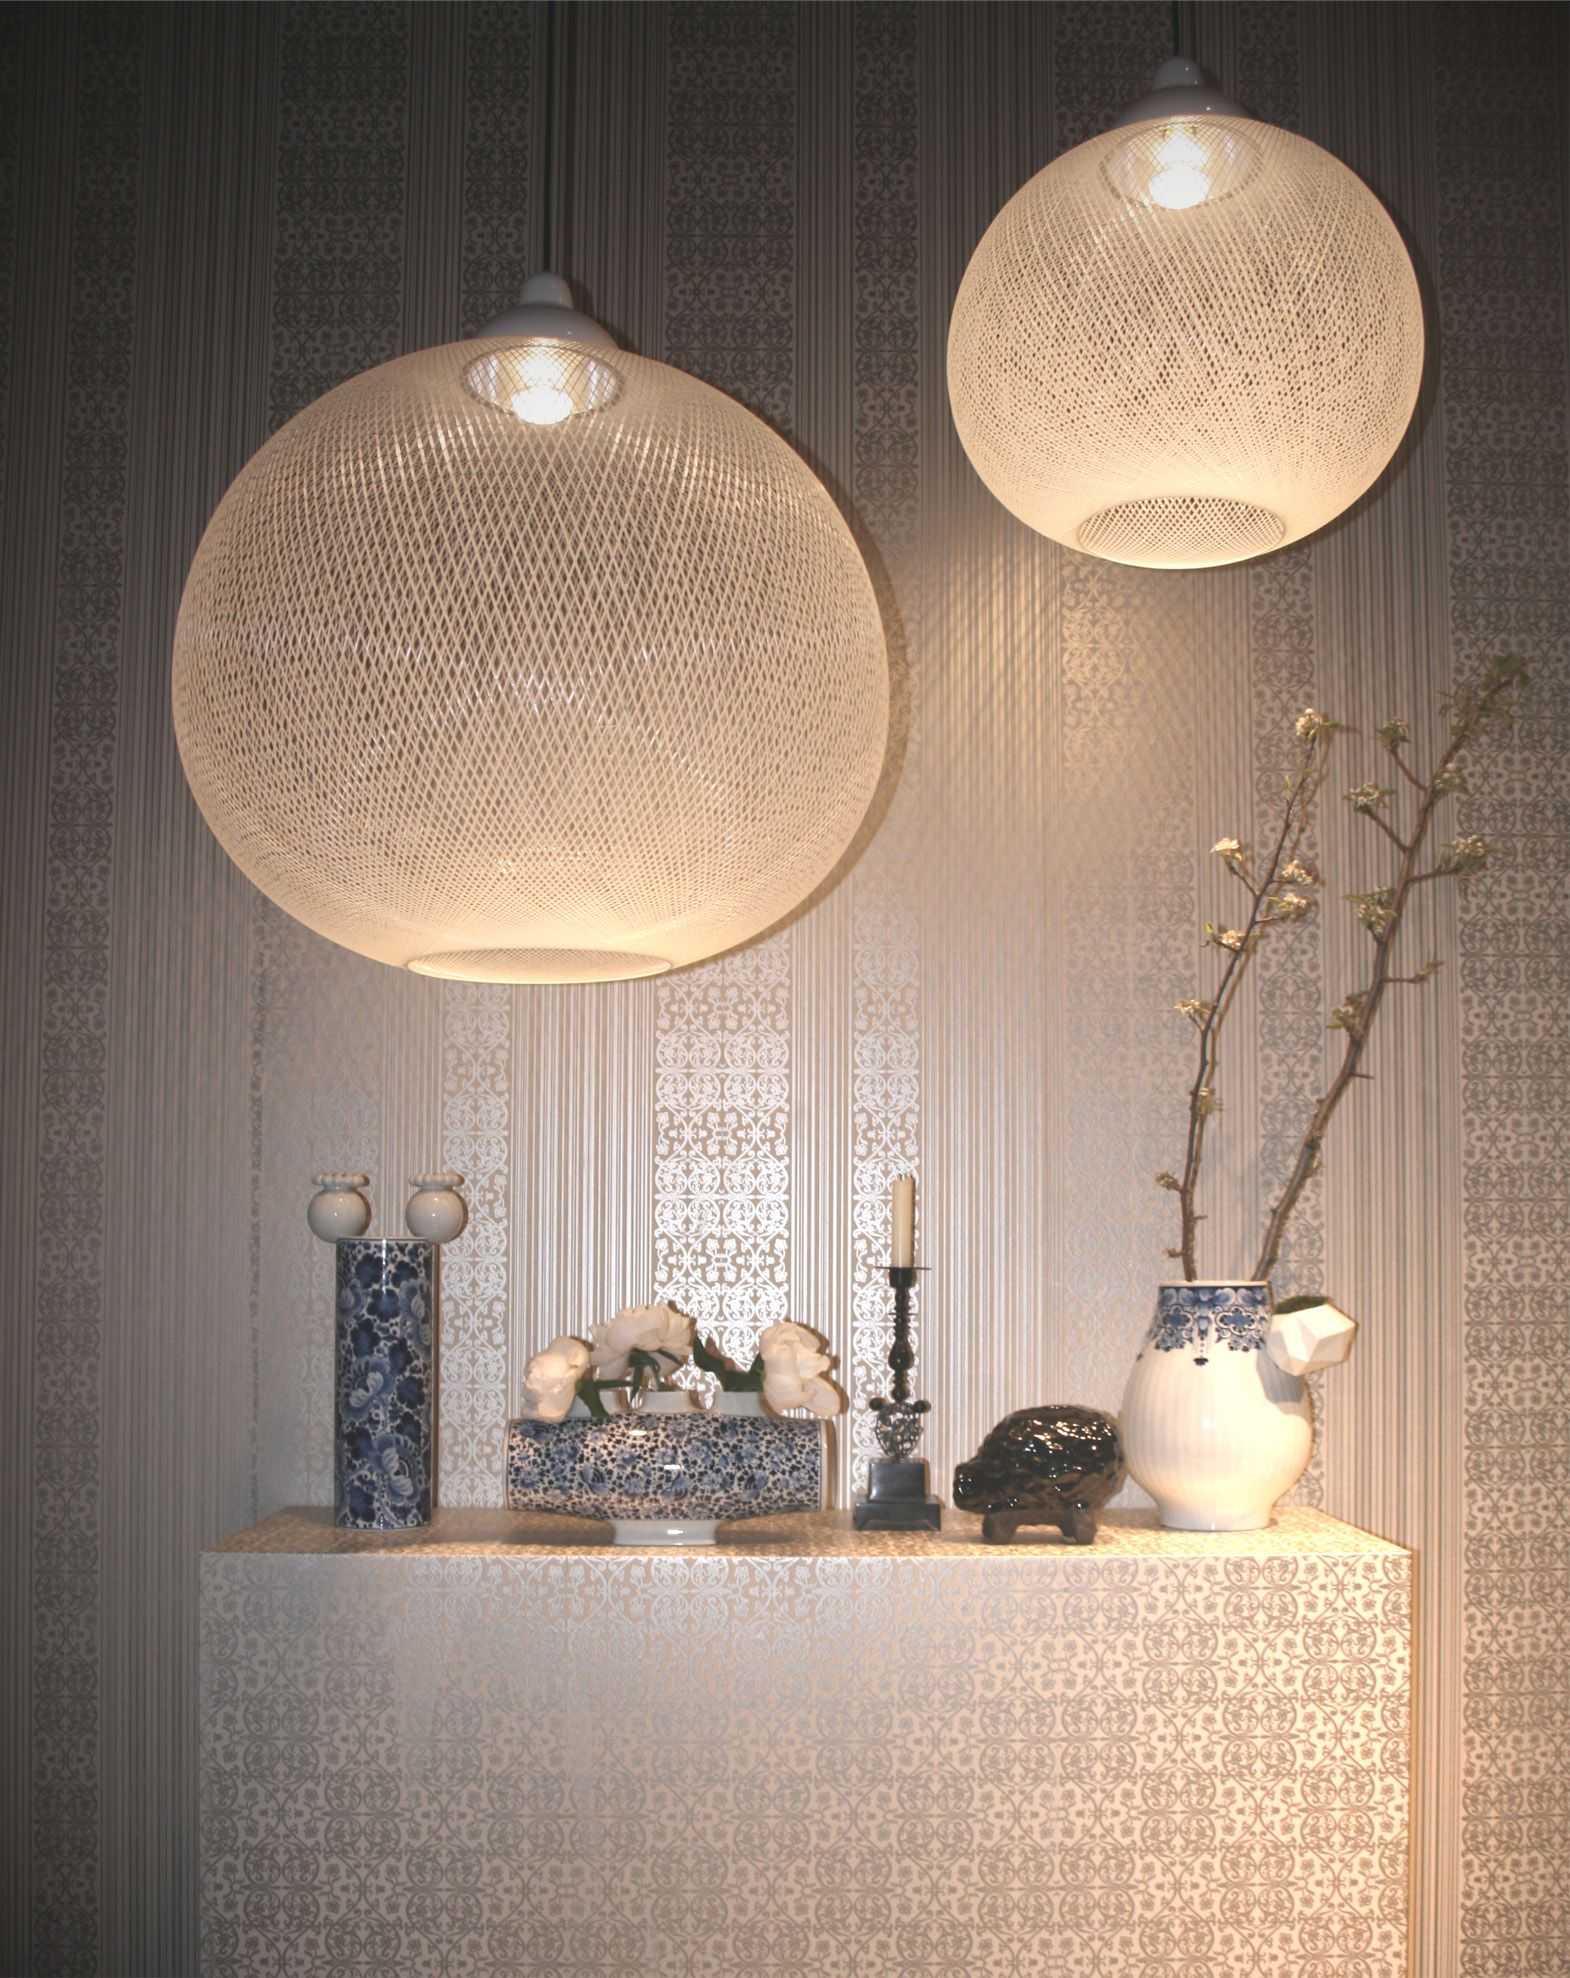 Suspension Non Random Light Small ˜ 48 cm Blanc Moooi